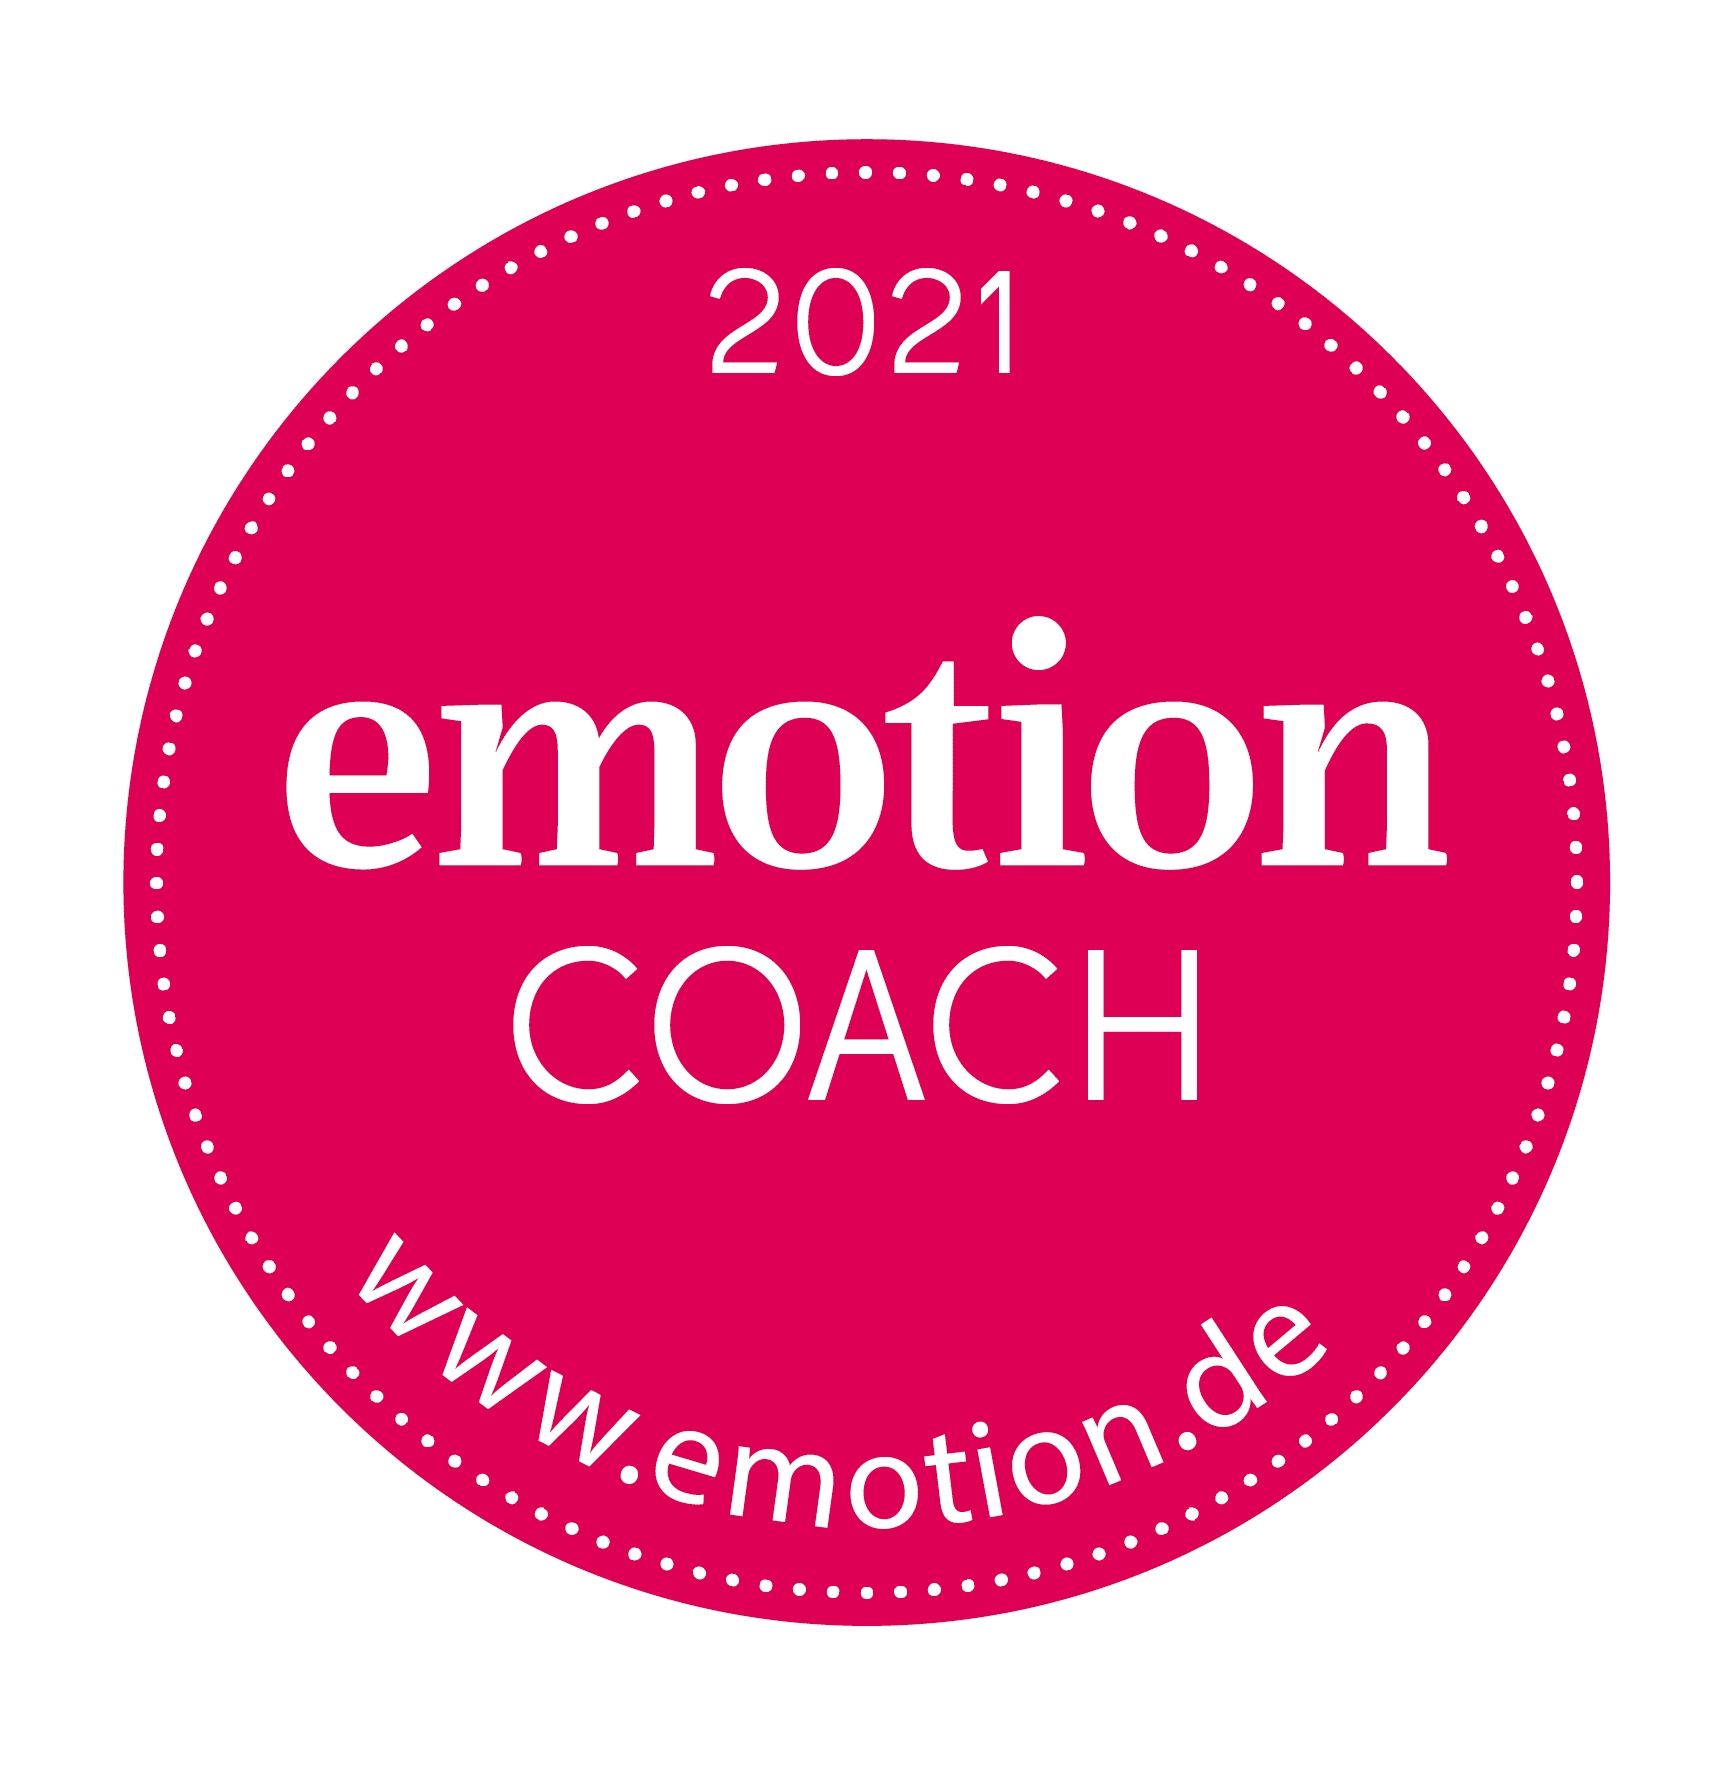 EMOTION-Coachsiegel 2021